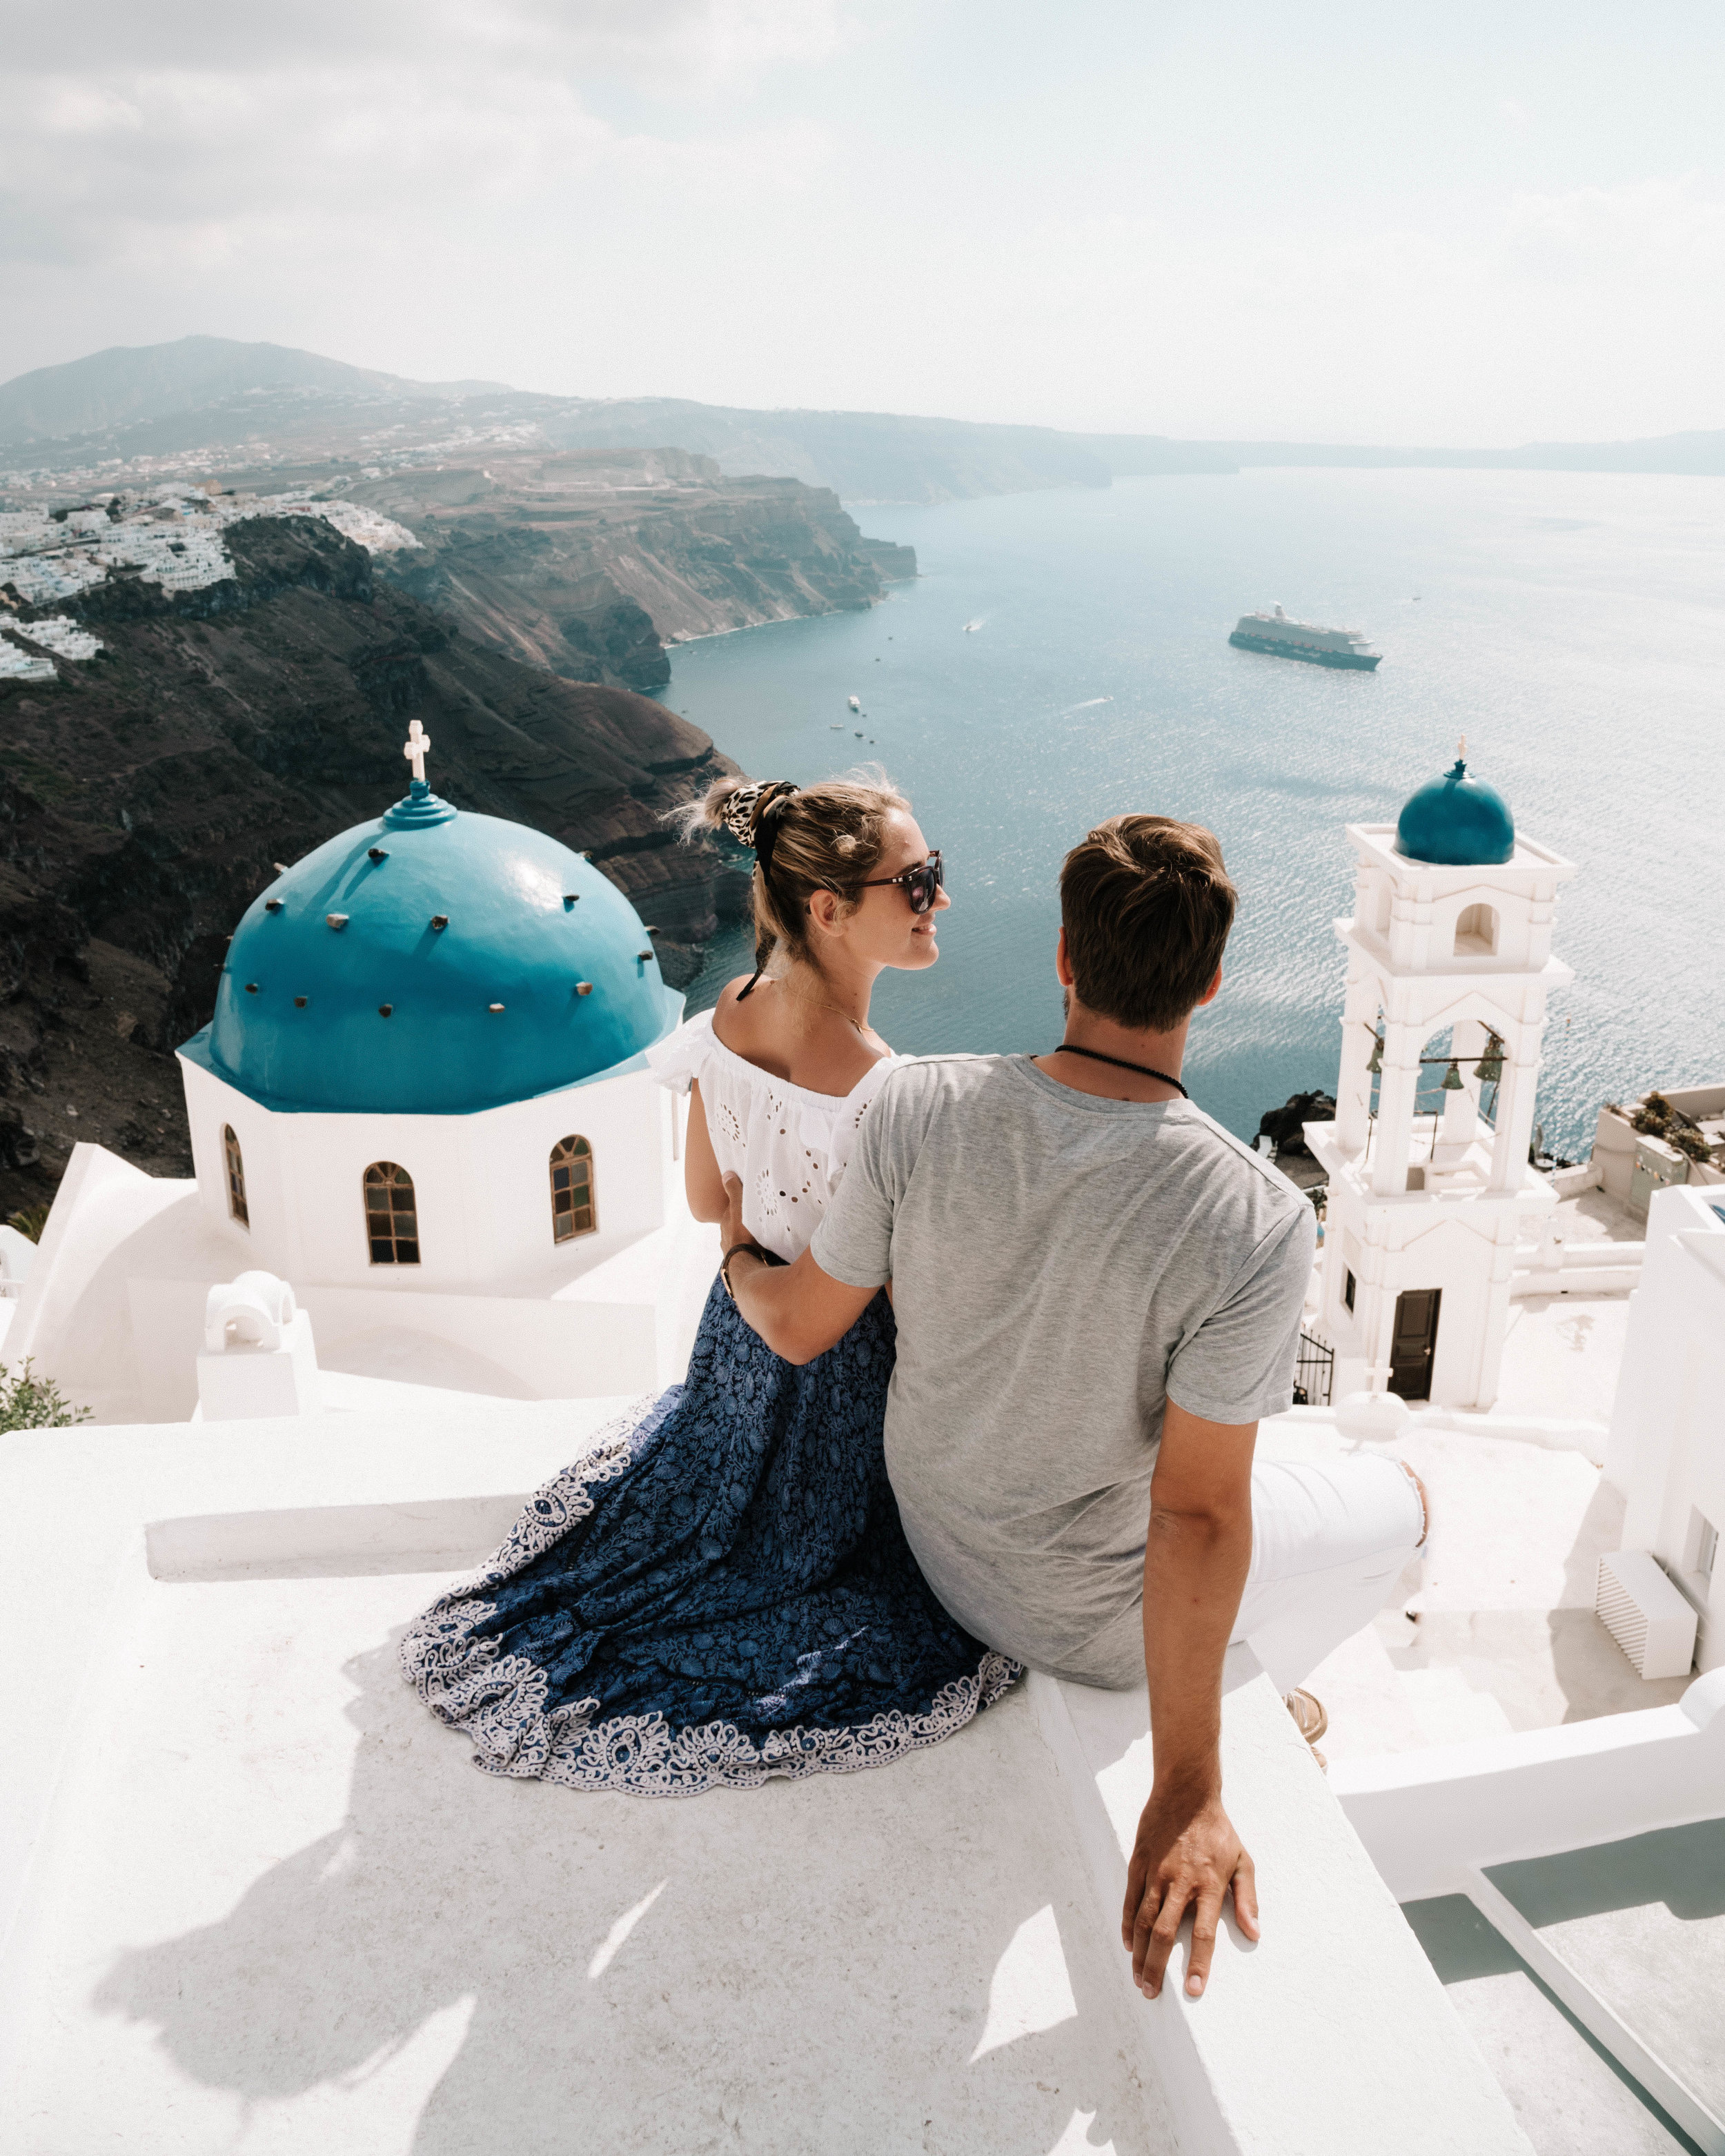 Your Passport - Travel Blogger in Santorini